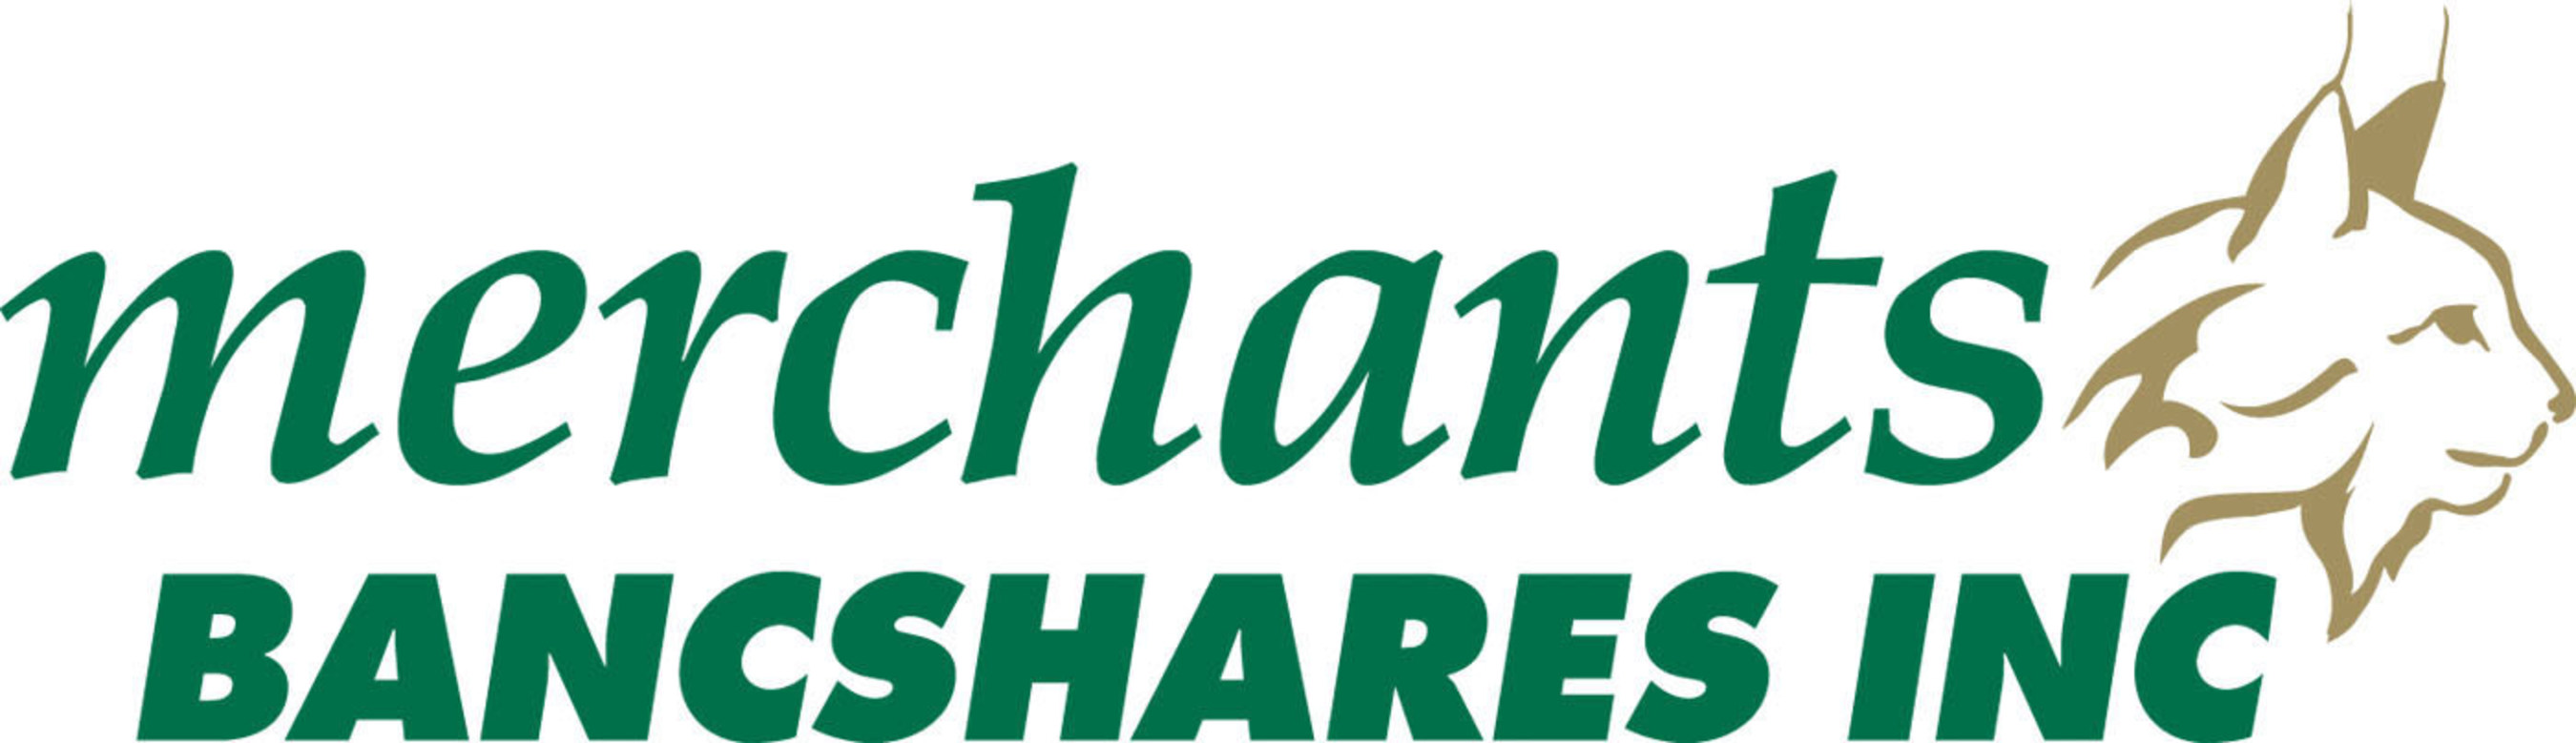 Merchants Bancshares, Inc. Announces Completion of Merger with NUVO Bank & Trust Company